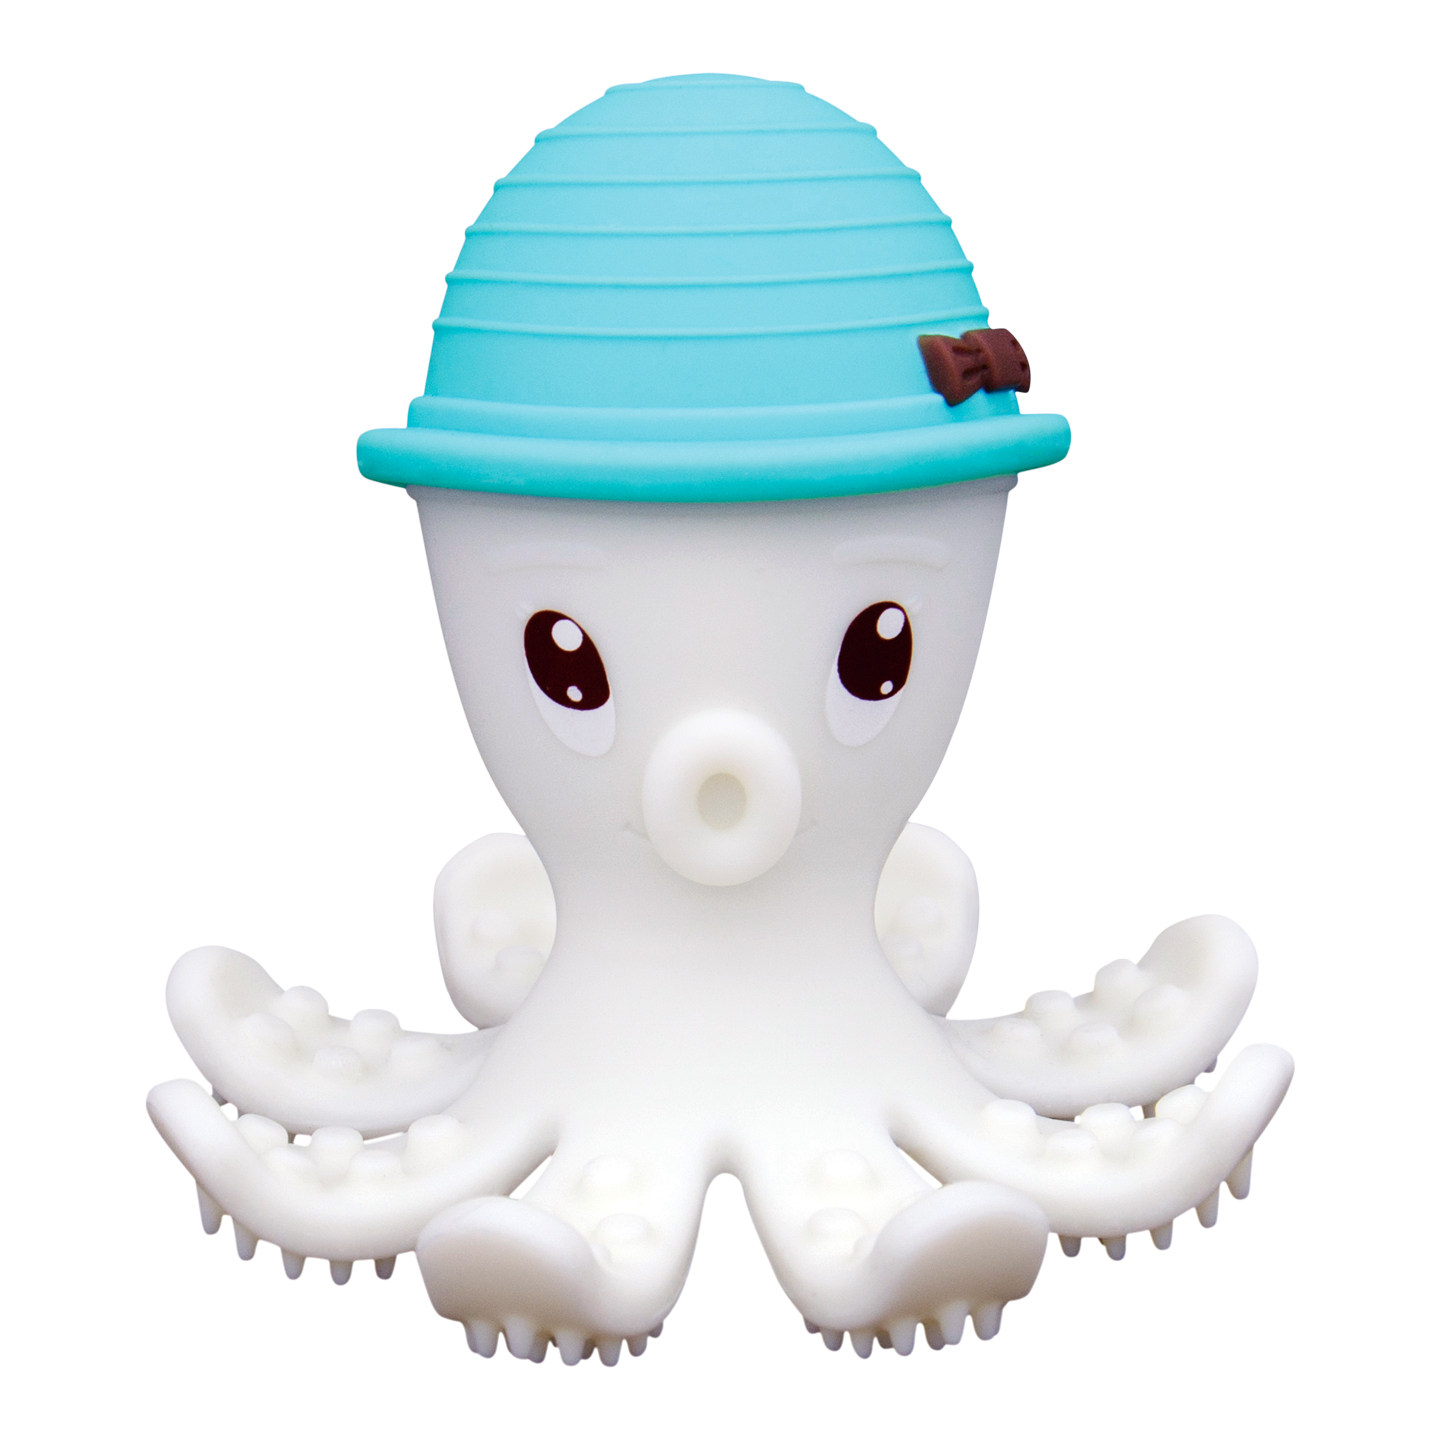 P8031 OCTOPUS TEETHER TOY Main Image